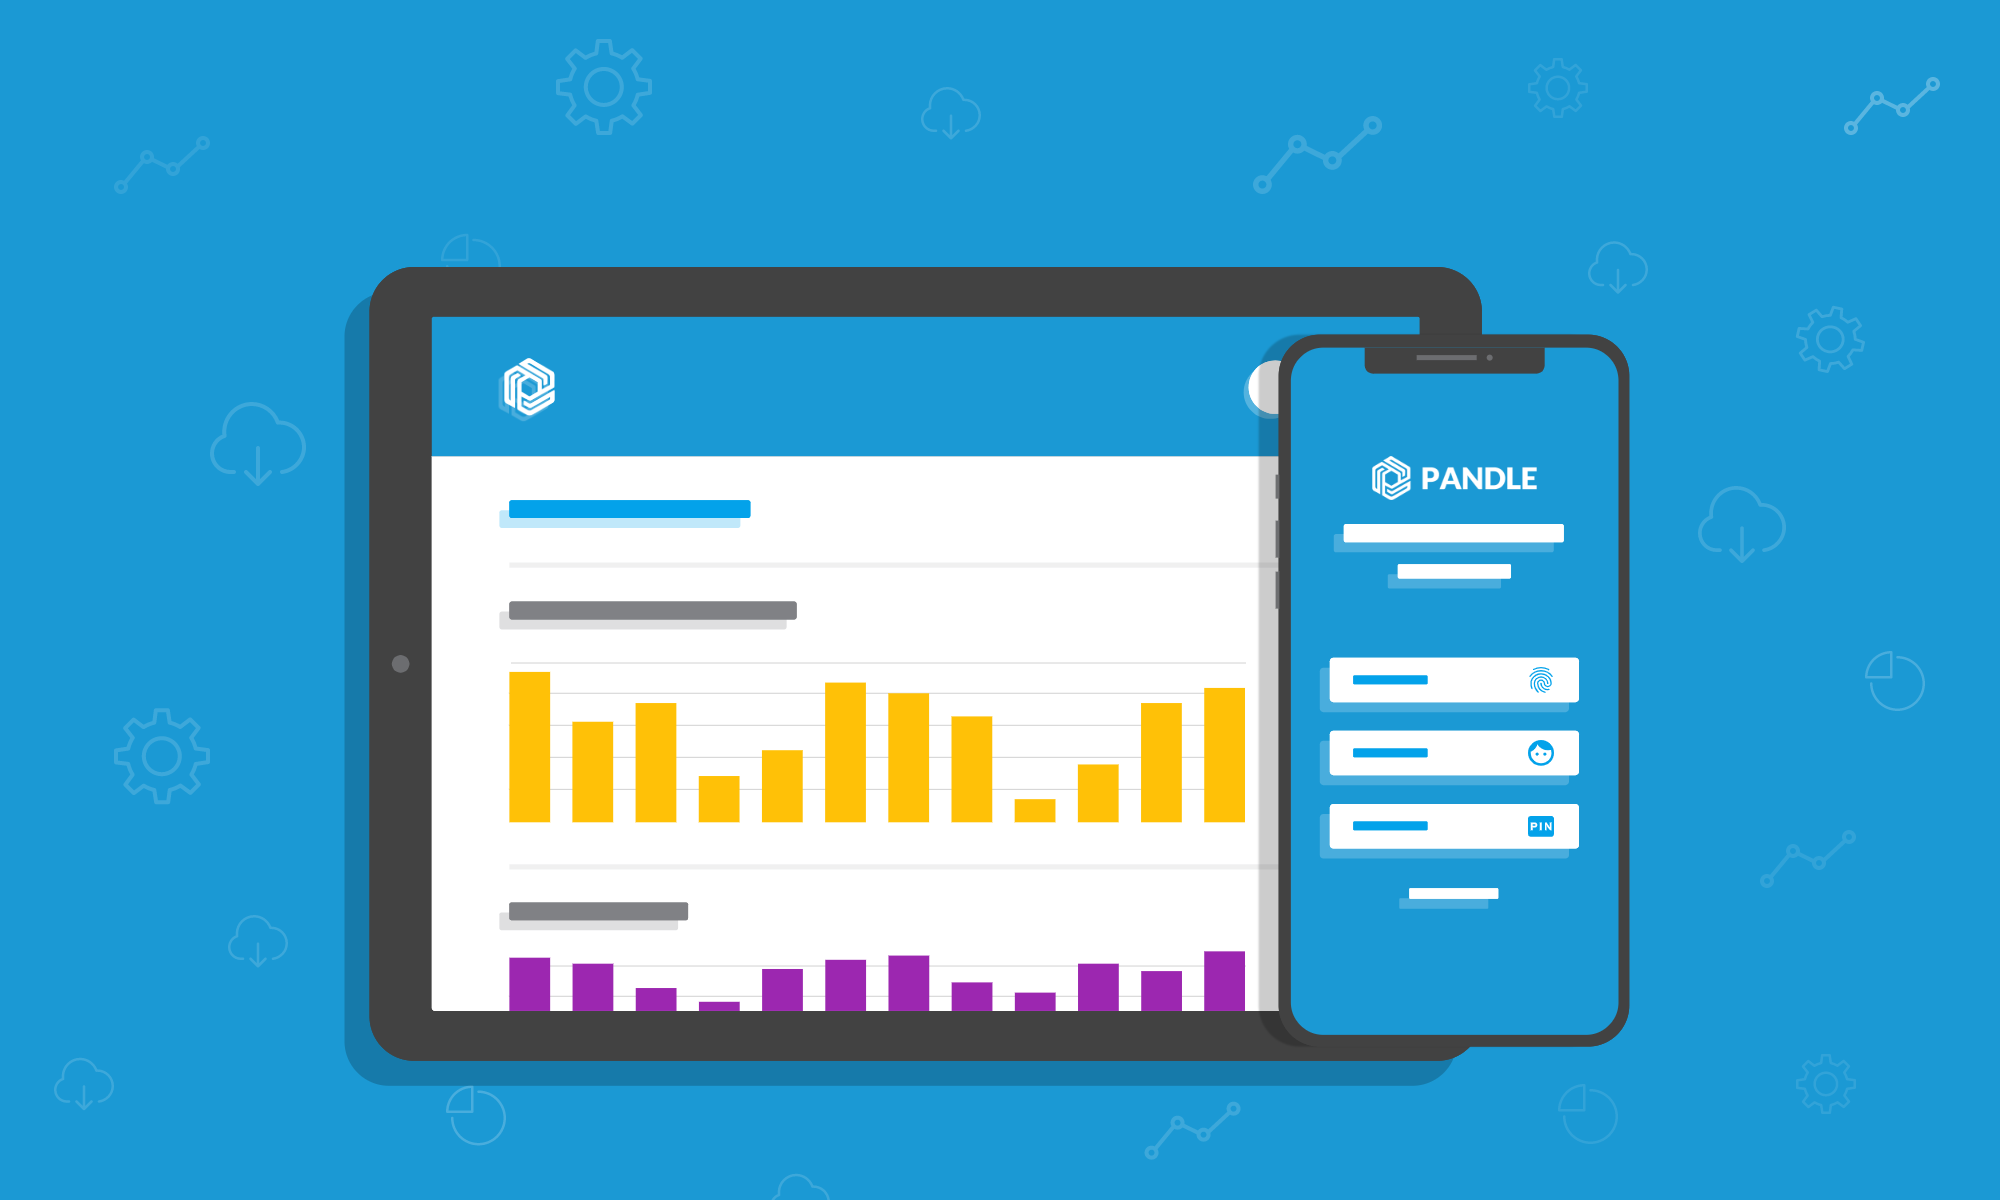 Introducing Biometric Login and Dashboards for Pandle Mobile